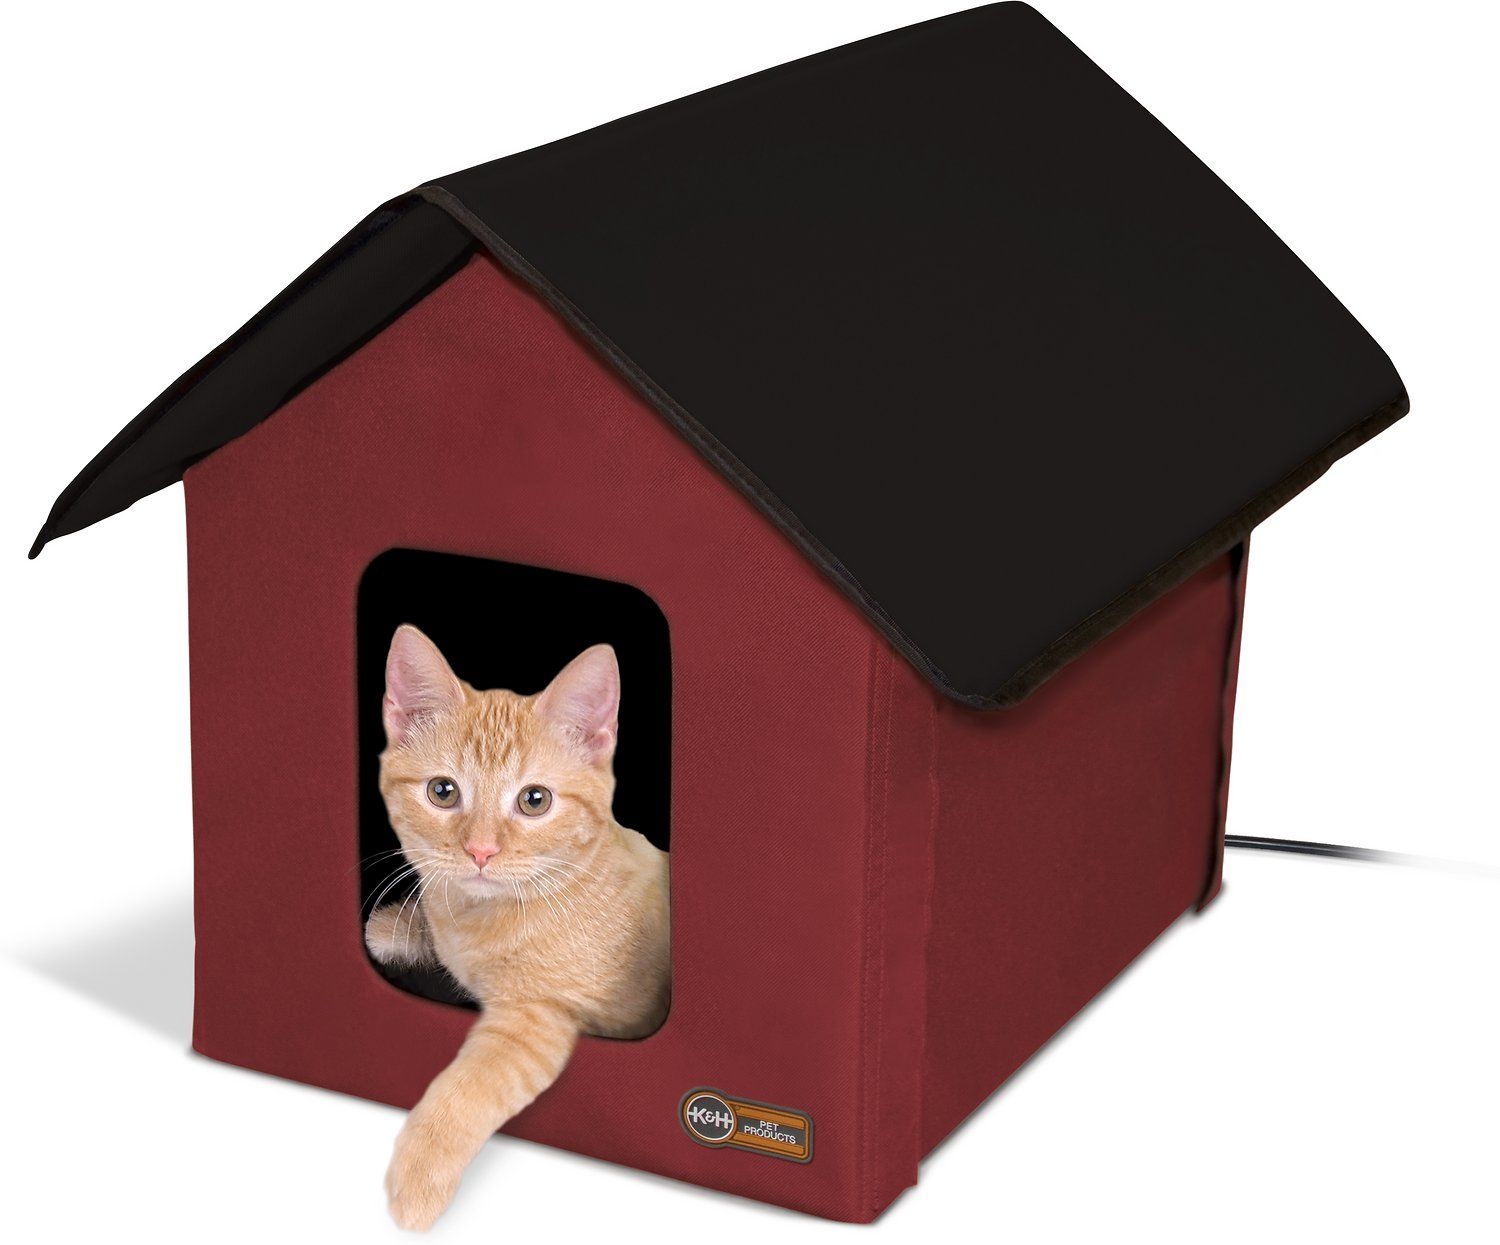 K&H Pet Products Outdoor Heated Kitty House, Red/Black